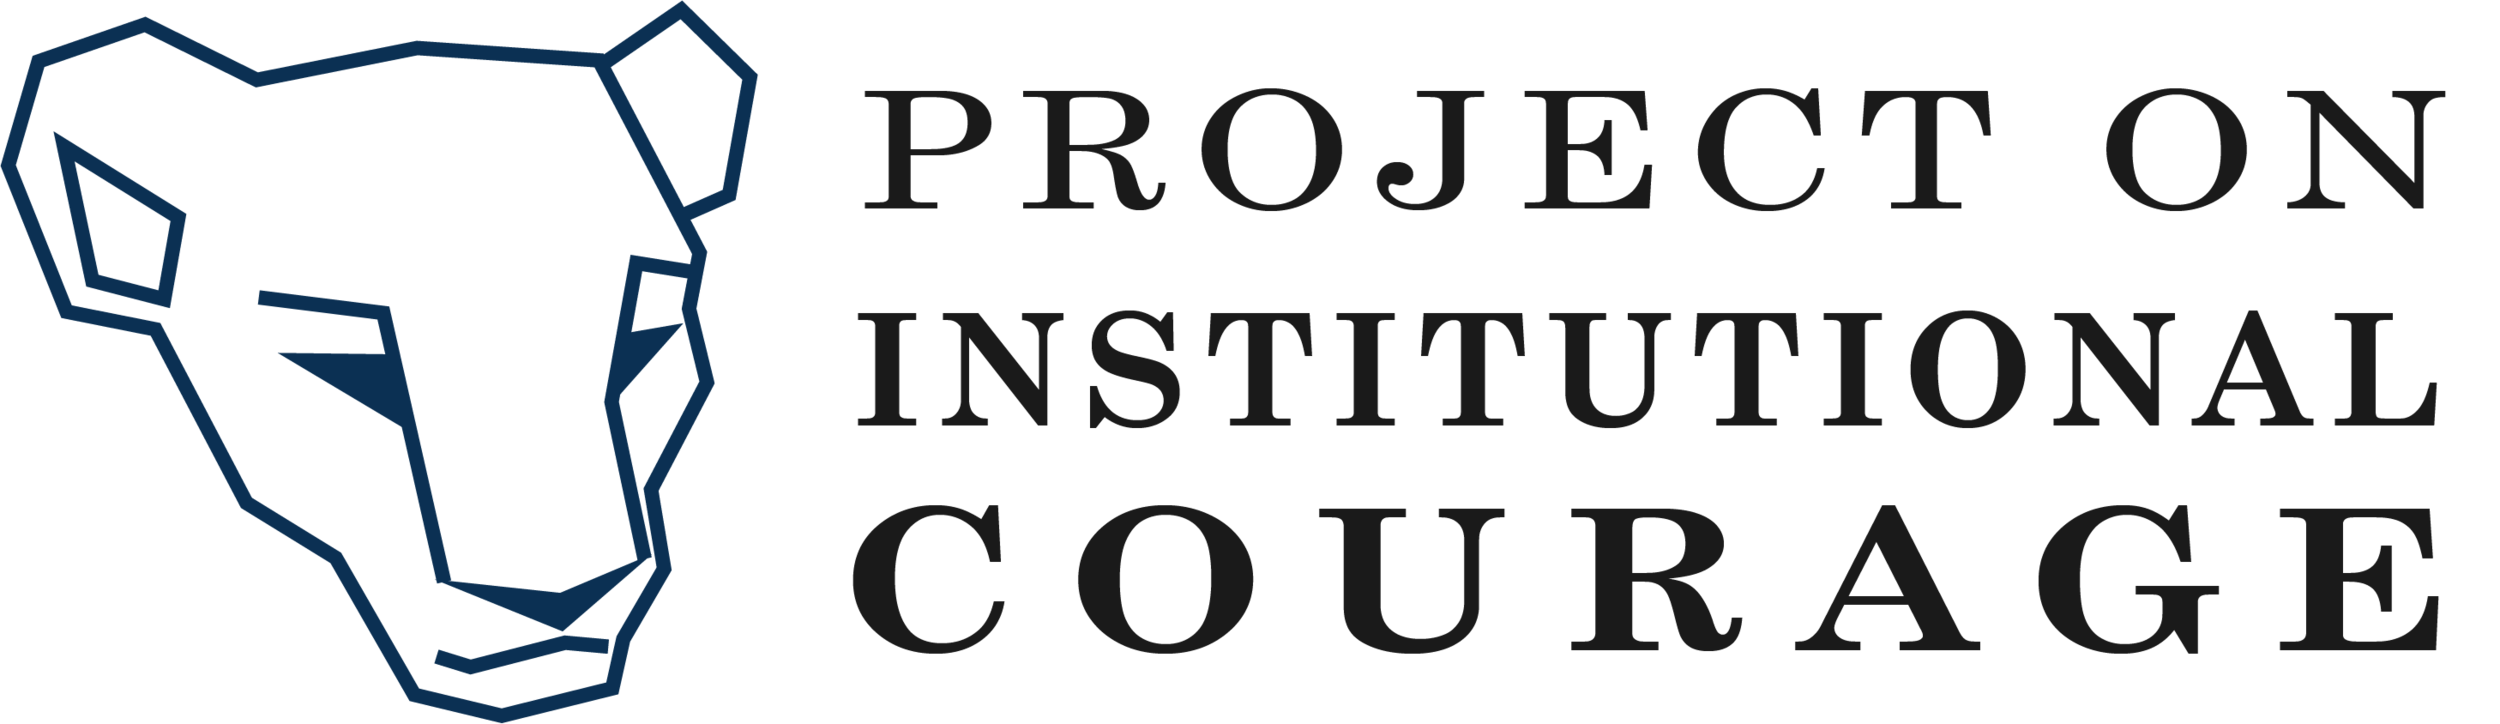 Project on Institutional Courage Logo.png